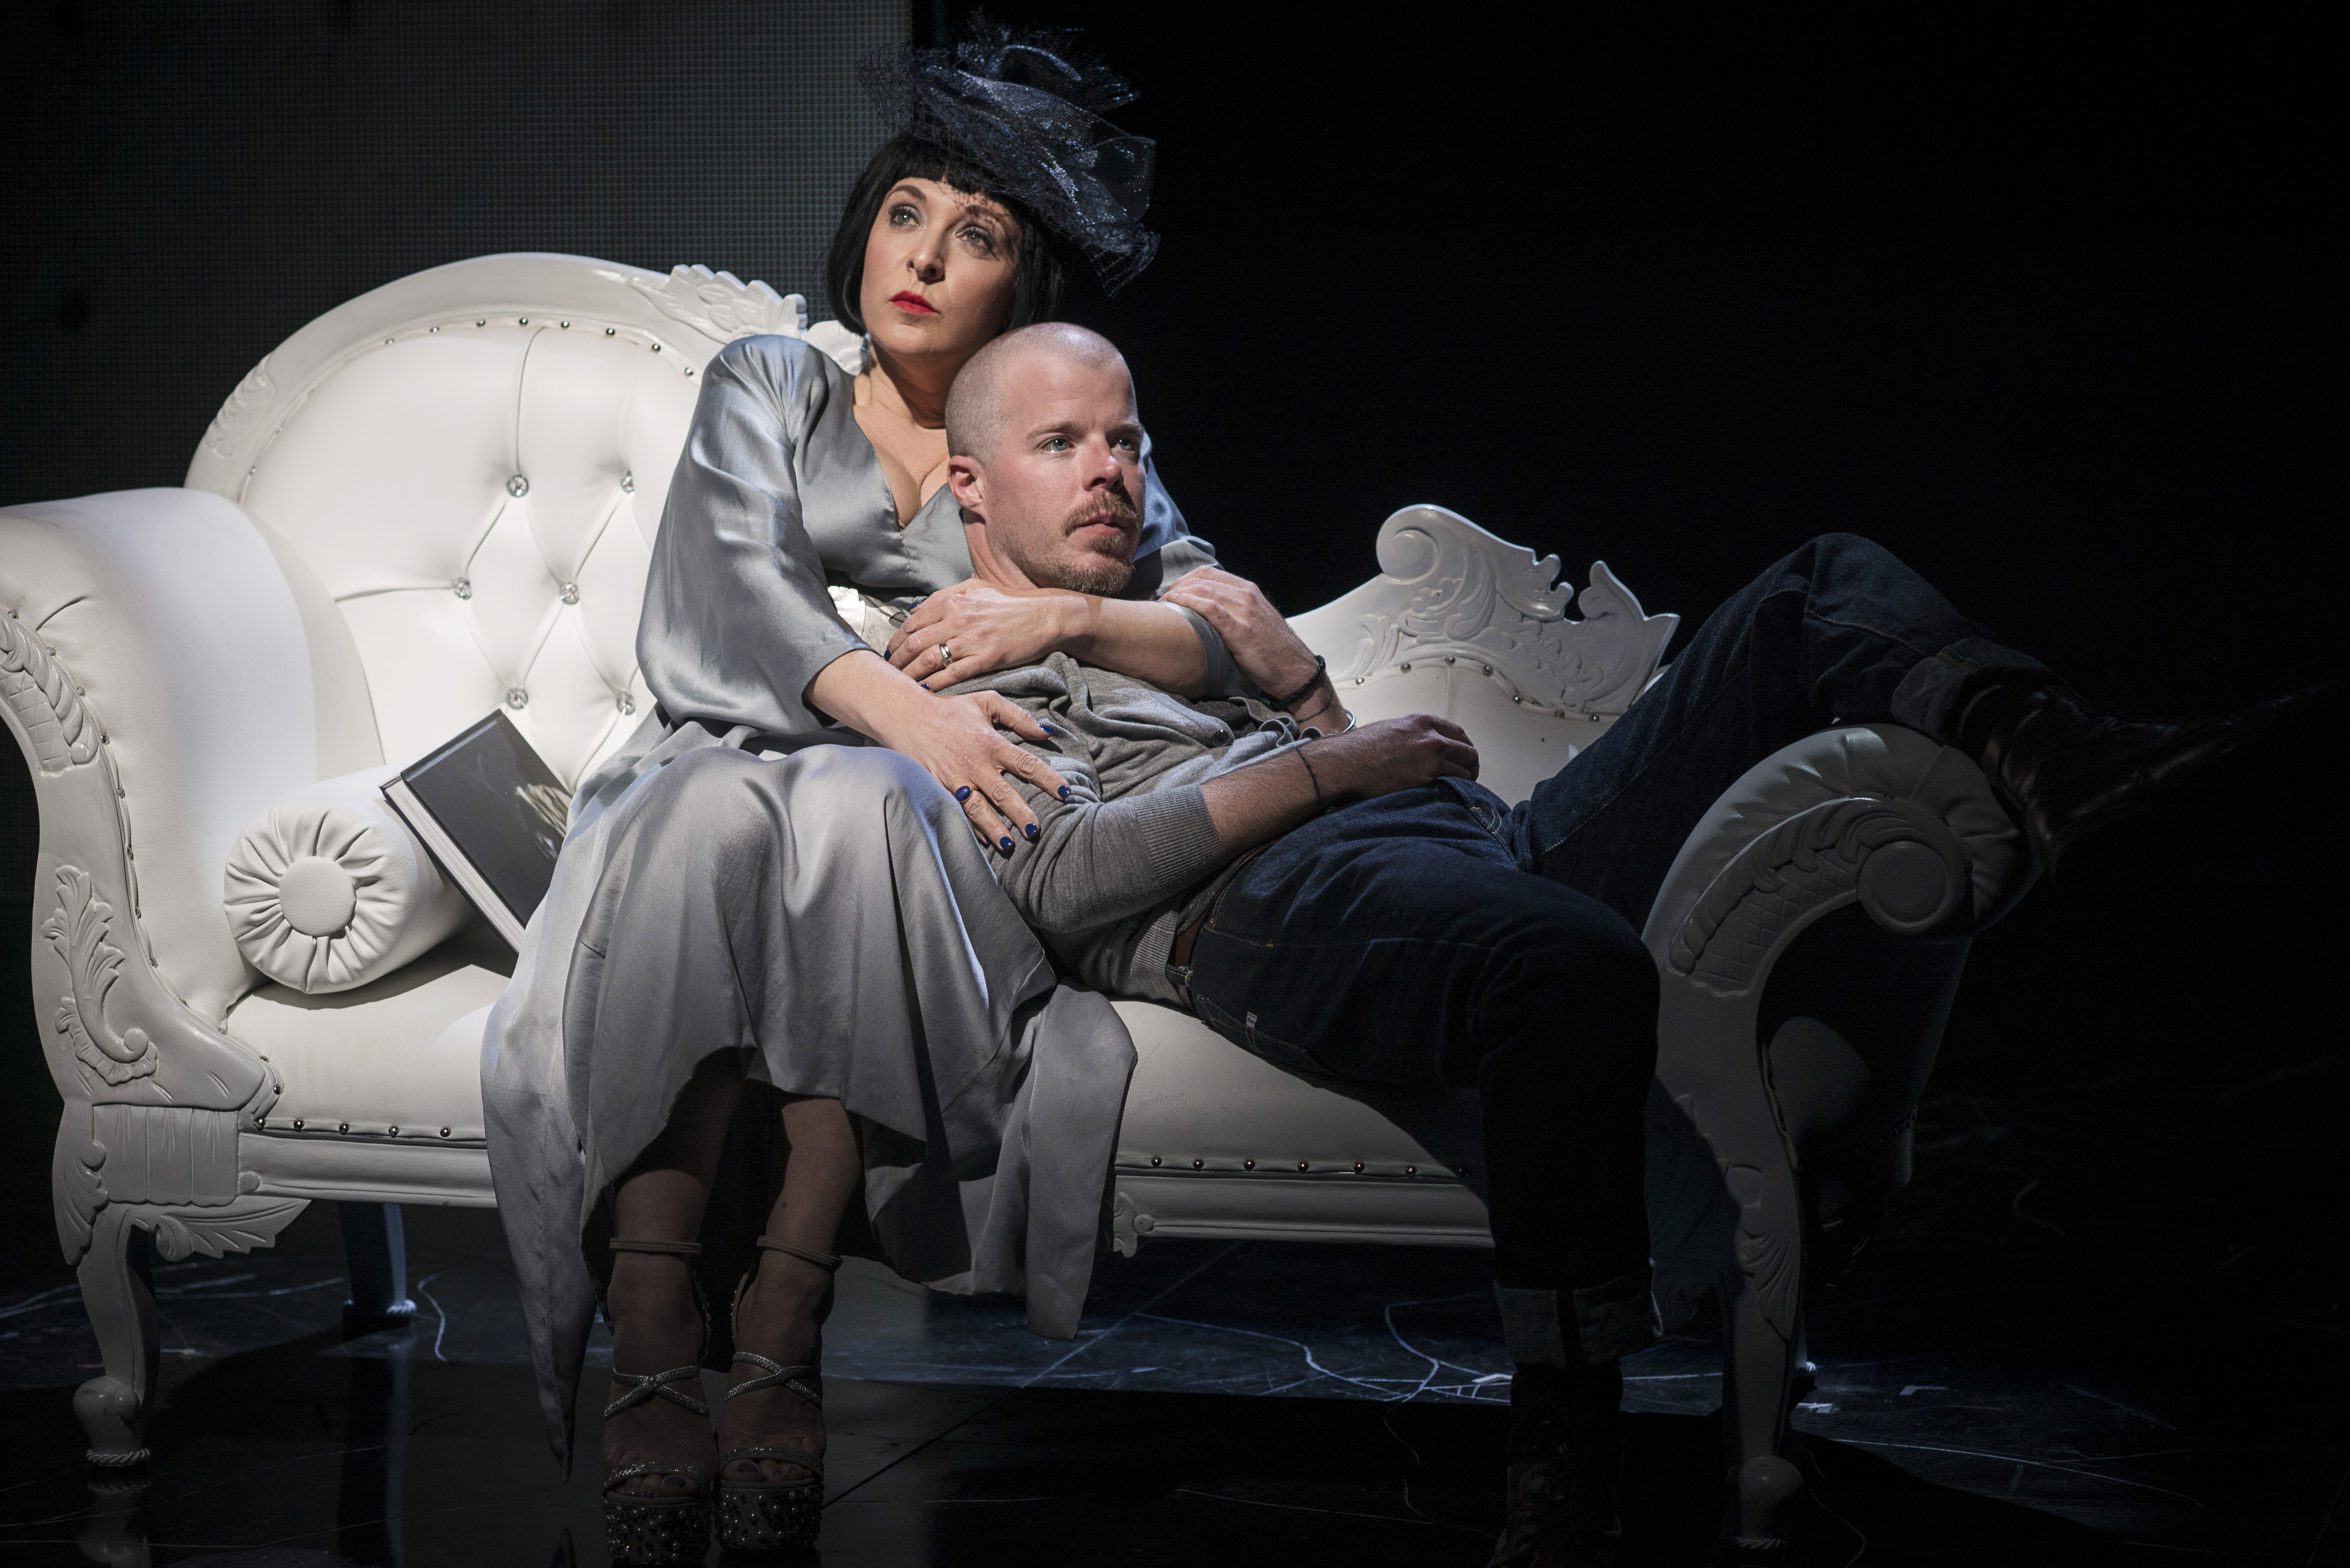 Tracy Ann Oberman as Isabella Blow and Stephen Wight as Lee in McQueen. Specular